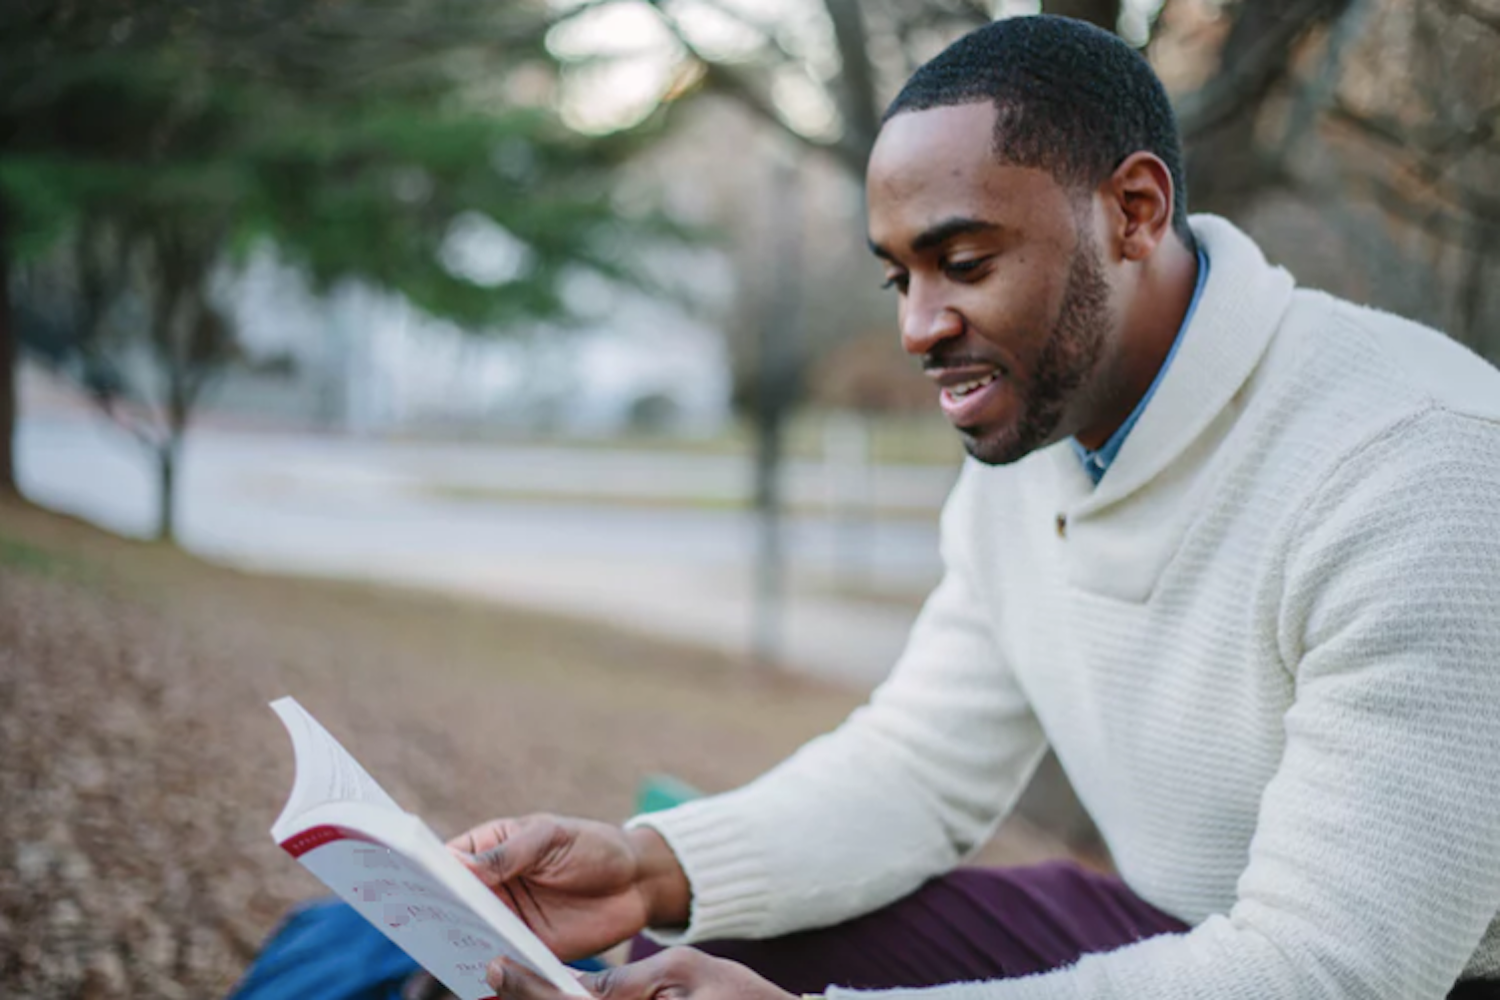 Man__book__reading_and_read_HD_photo_by_Tamarcus_Brown___tamarcusbrown__on_Unsplash.png